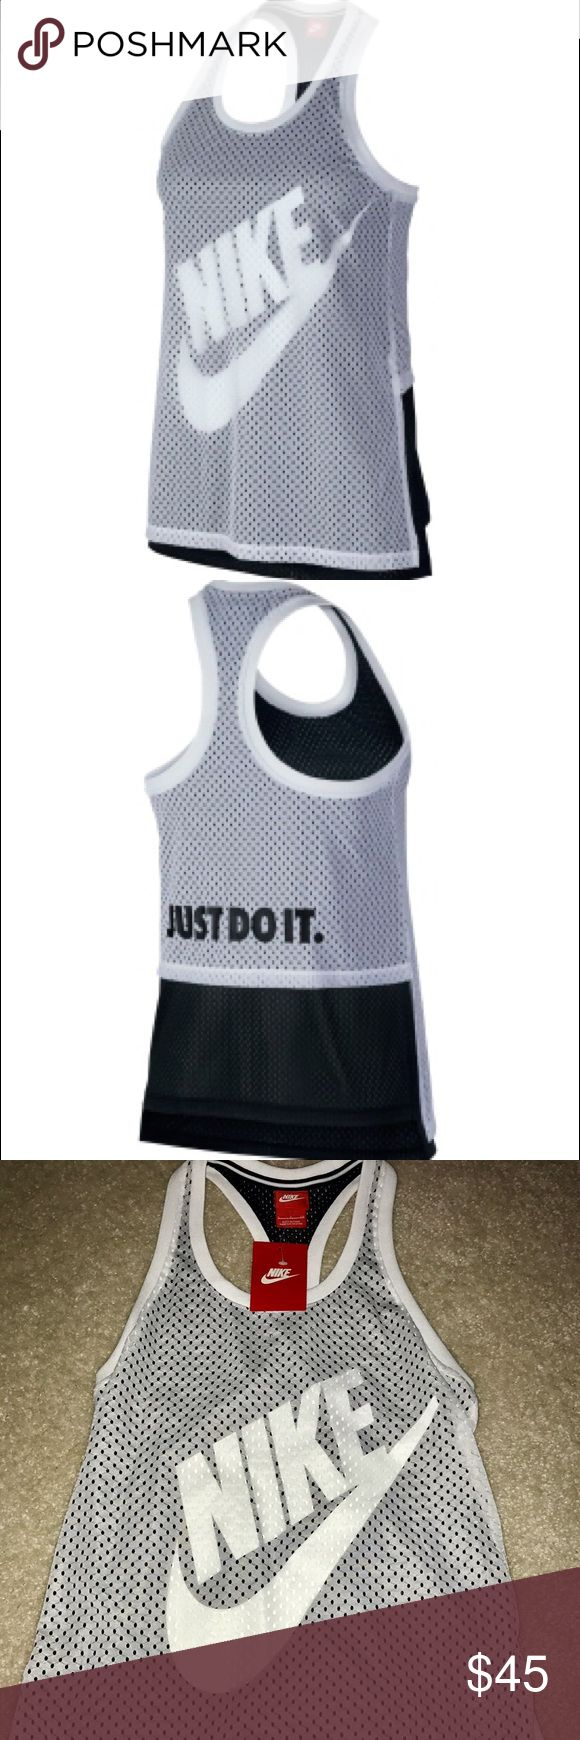 """NEW🎁Nike Mesh training tank sz S NEW🎁Nike Mesh training tank sz S  Mesh fabric offers stylish breathability 2-layer construction features 2 different scales of mesh fabric Relaxed fit loosely drapes the body Nike corporate logo screen print peaks through the top mesh layer Racerback design features a mesh overlay printed with """"JUST DO IT"""" Split hem gives a flattering shape  nike Tops Tank Tops"""